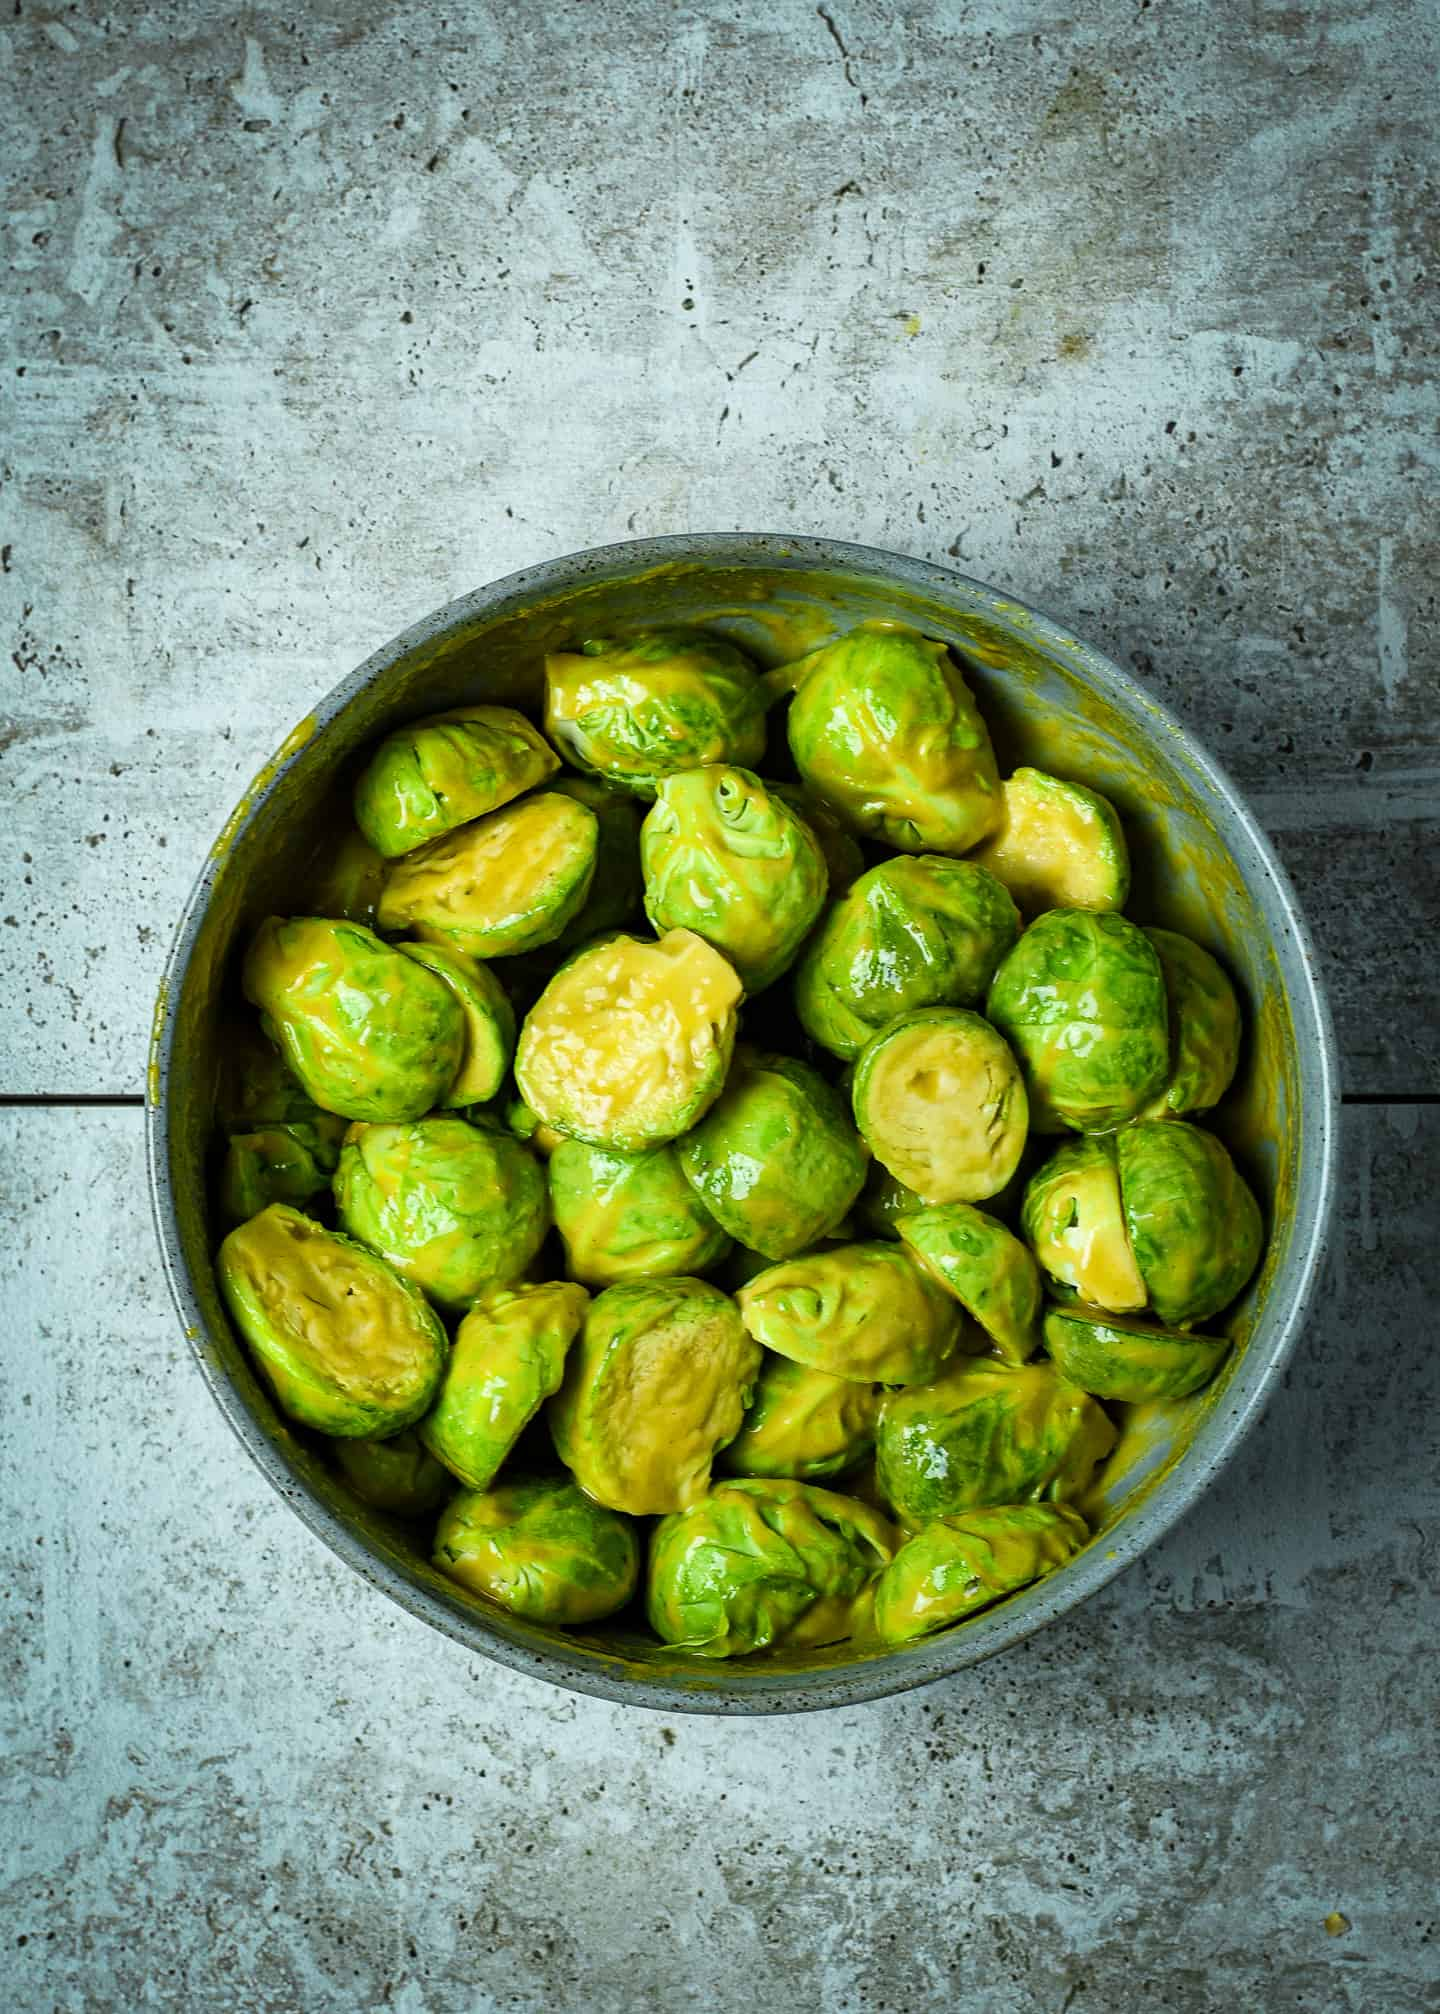 Brussels sprouts in bowl of marinade.